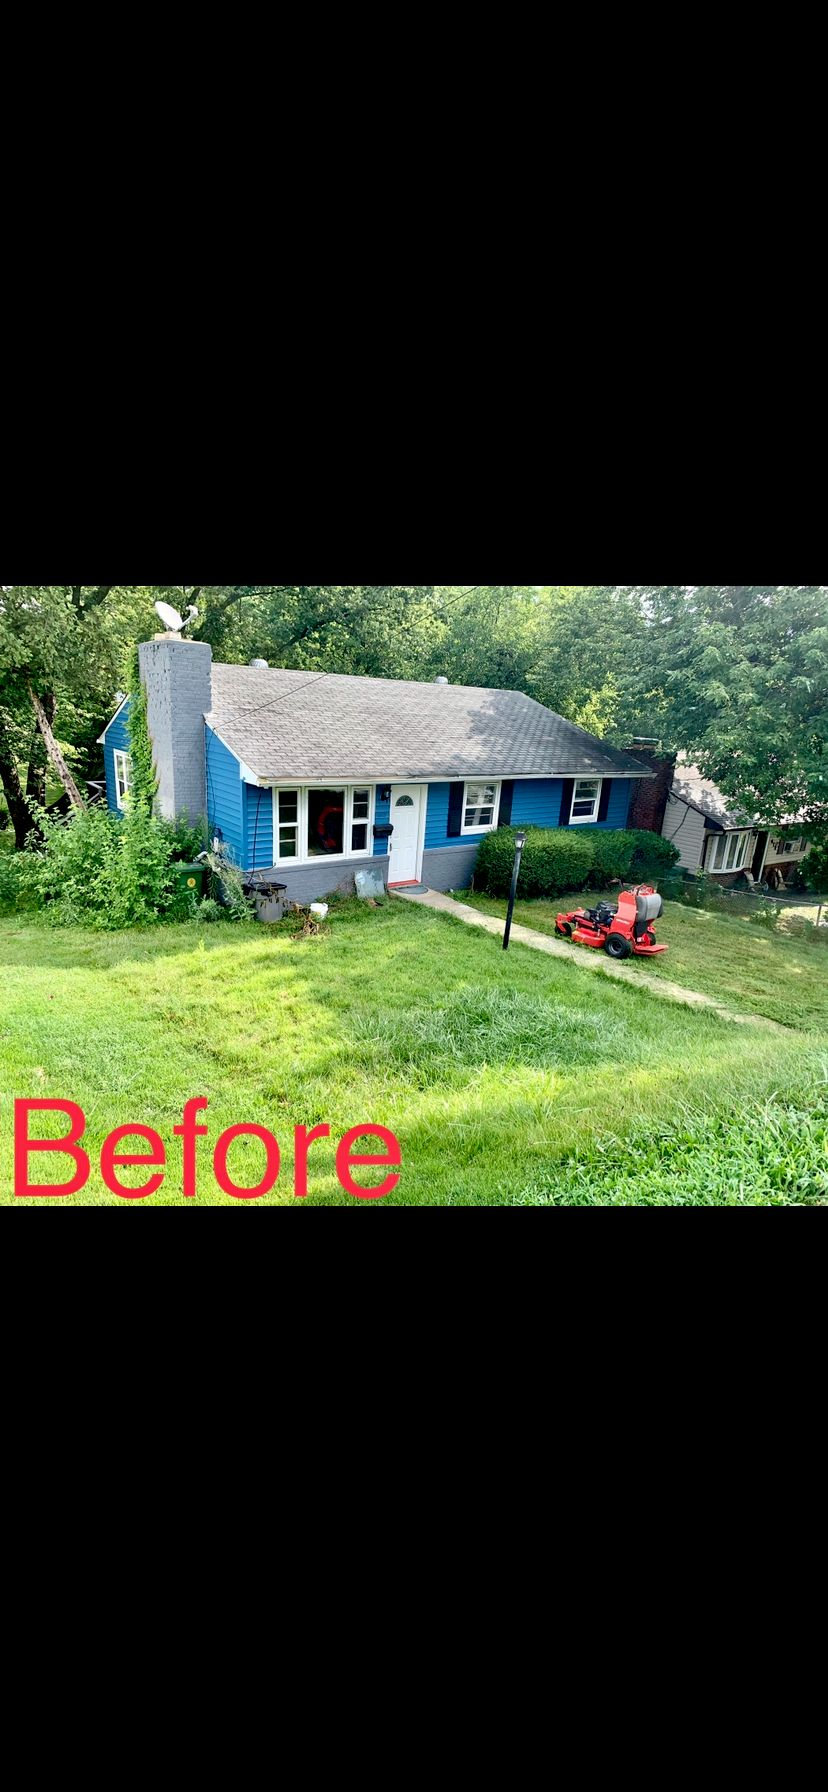 Full Cleanup and Landscaping